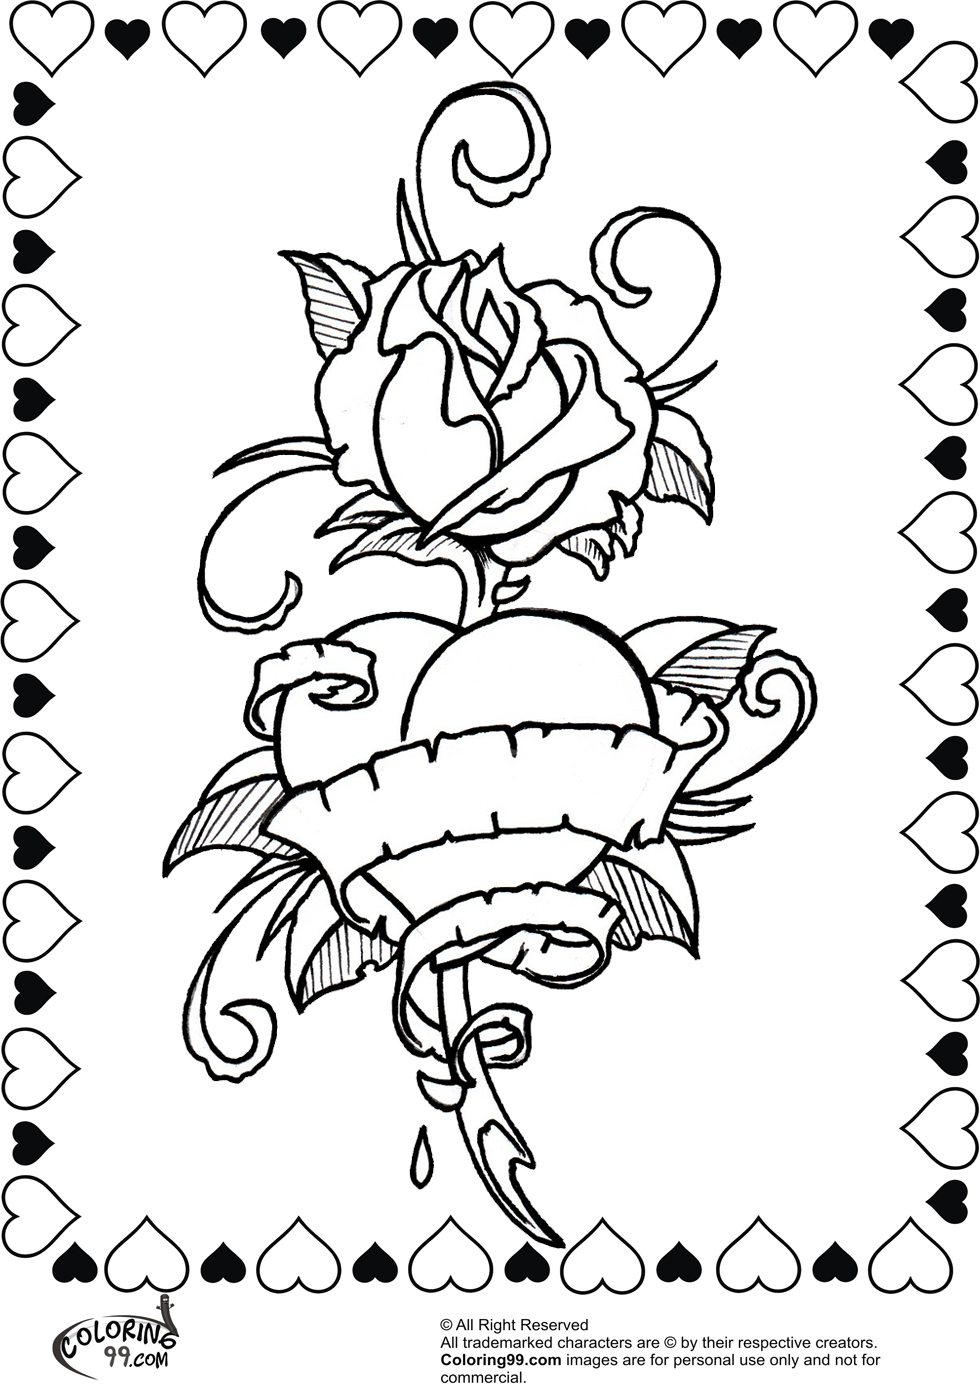 Coloring pages of roses - Coloring Pages Hearts And Roses Hearts And Roses Coloring Pages